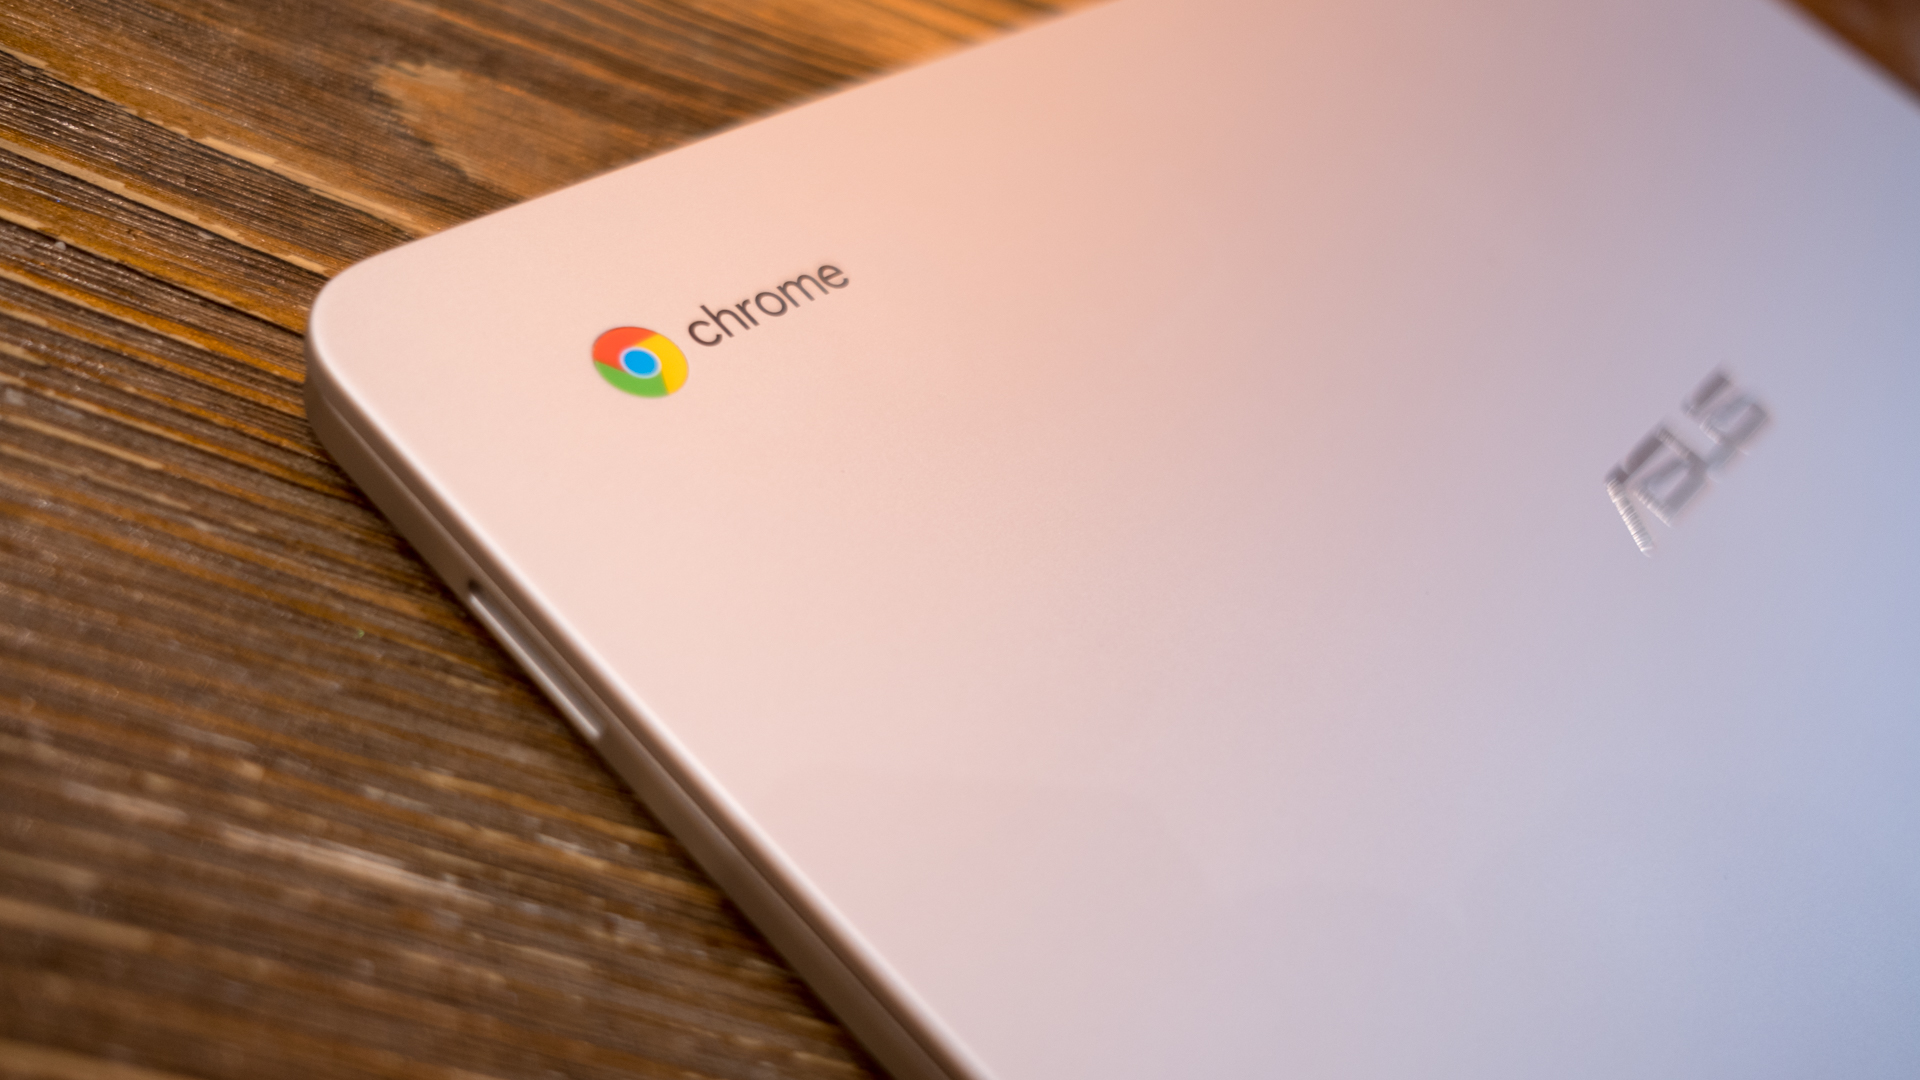 Instant tethering is coming to Chrome OS to make it easier to get online